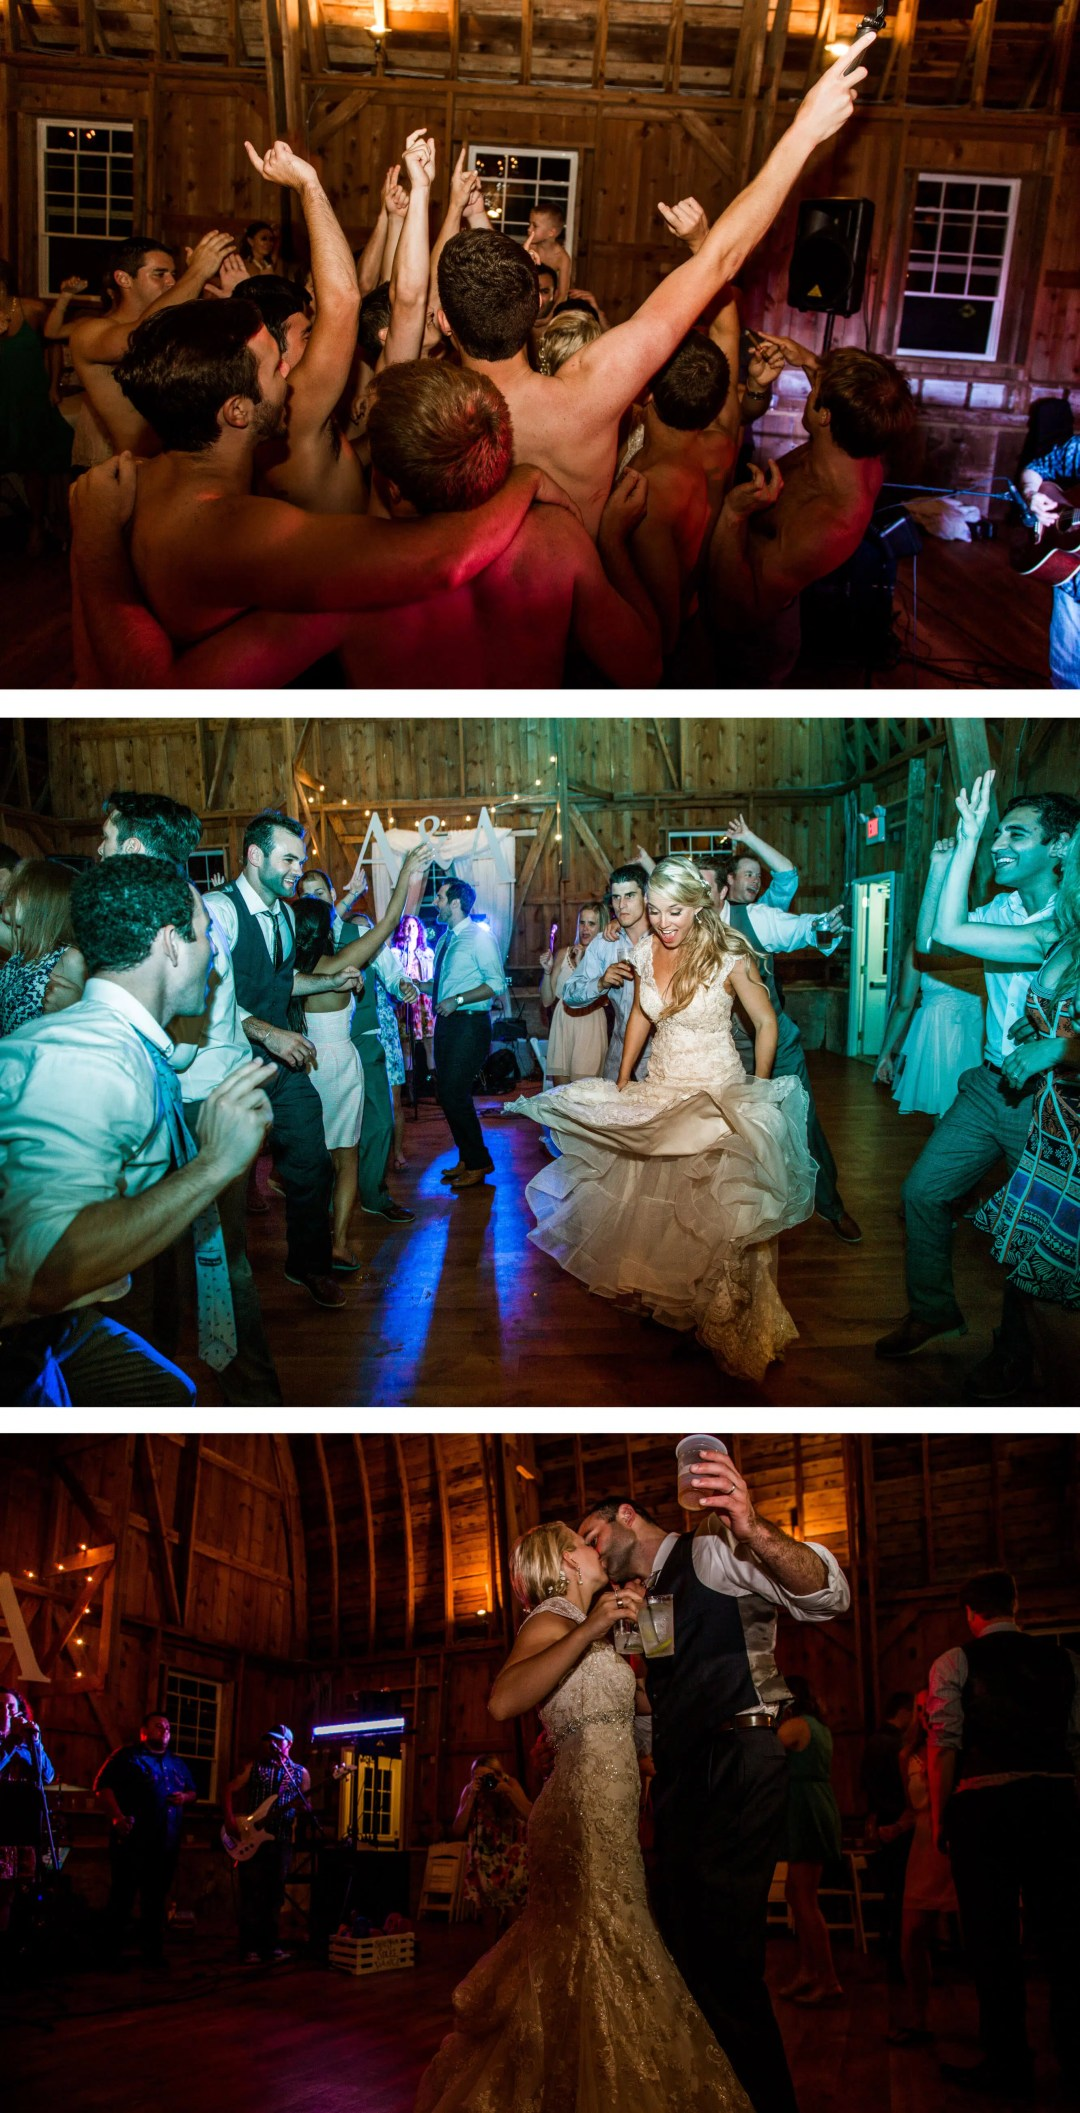 Sussex Wedding Photographer - Old barn reception